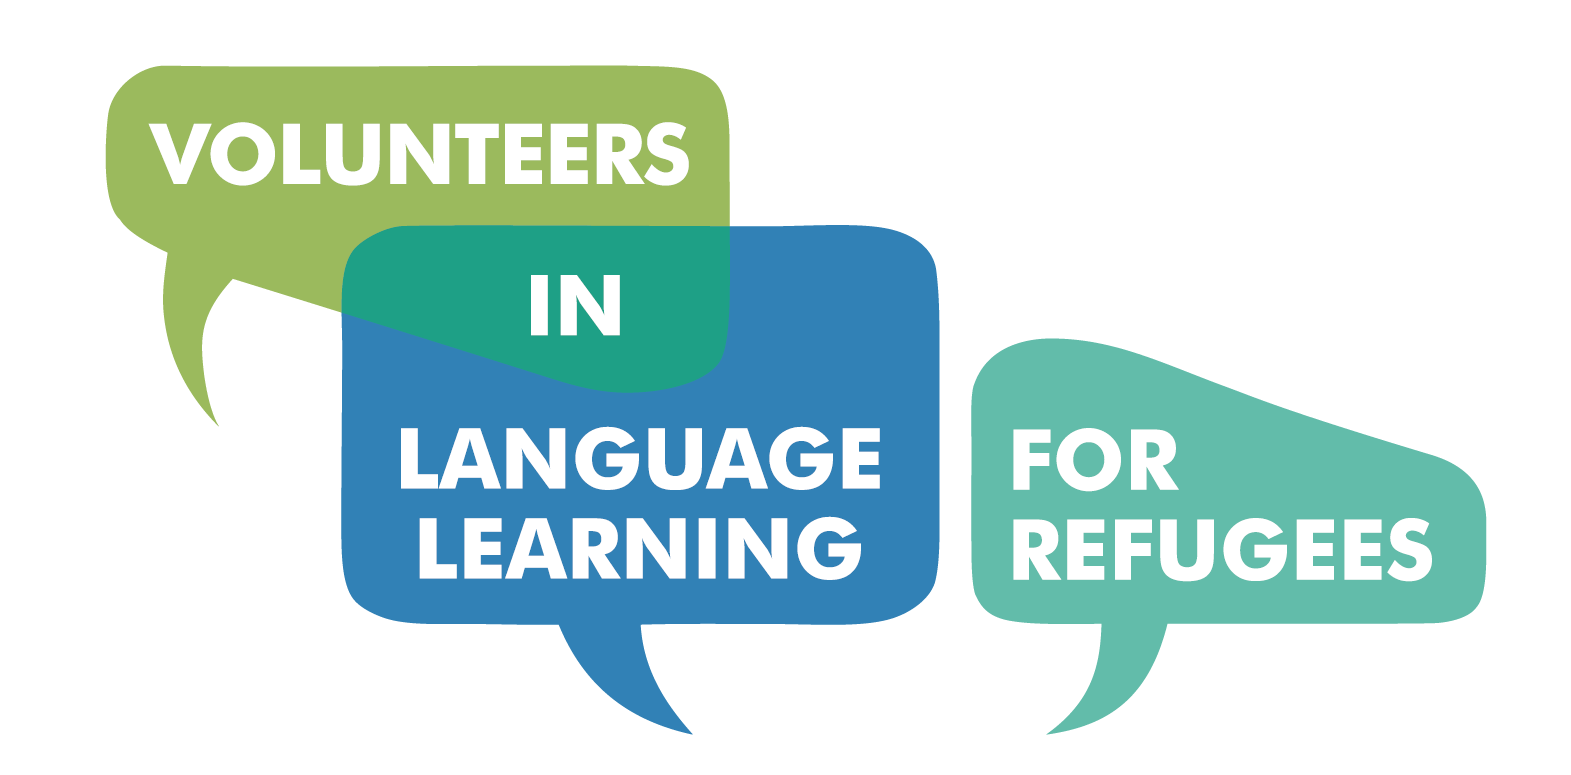 Volunteers in Language Learning for Refugees logo